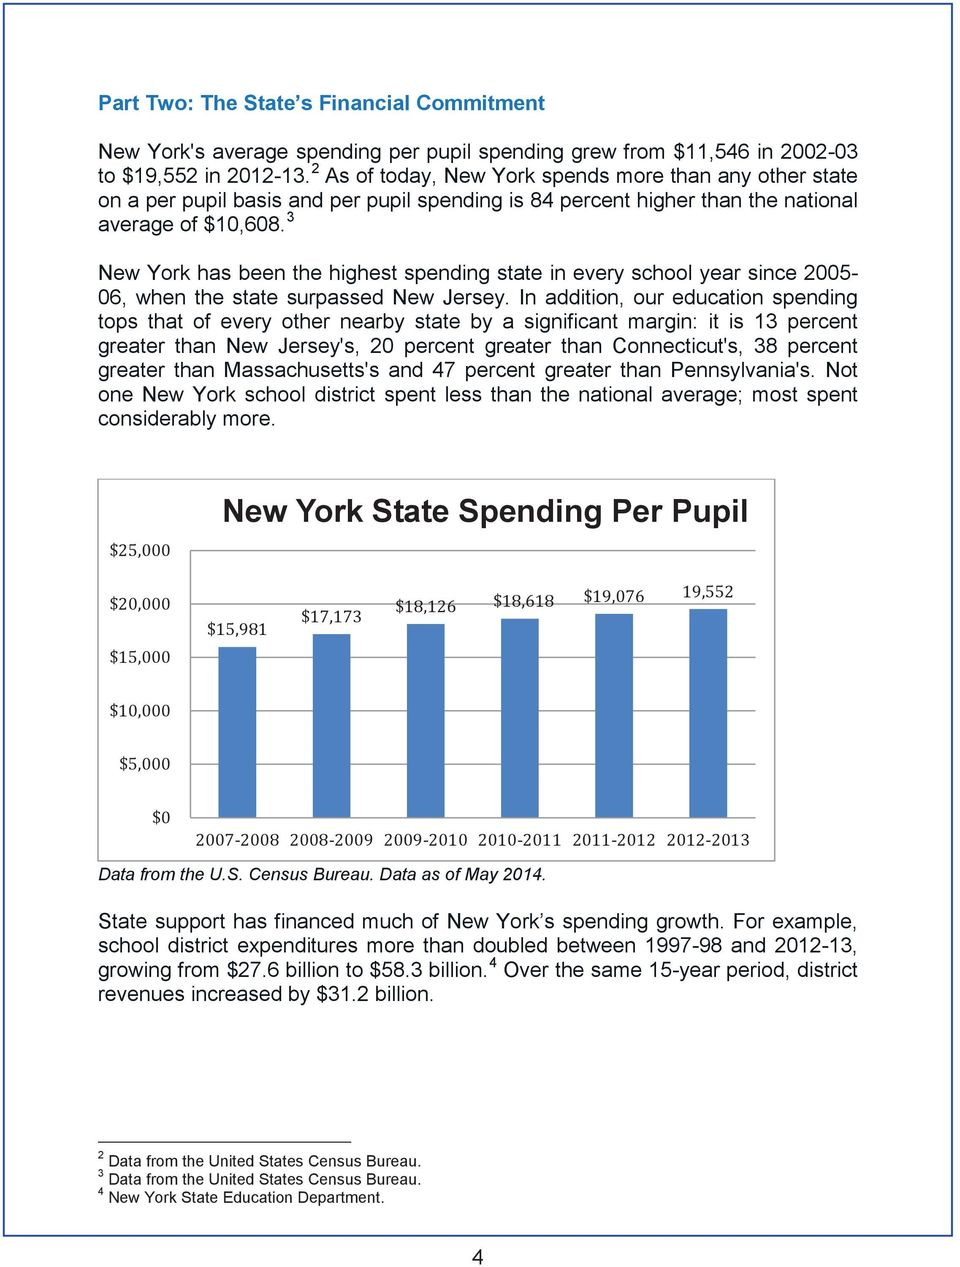 3 New York has been the highest spending state in every school year since 2005-06, when the state surpassed New Jersey.